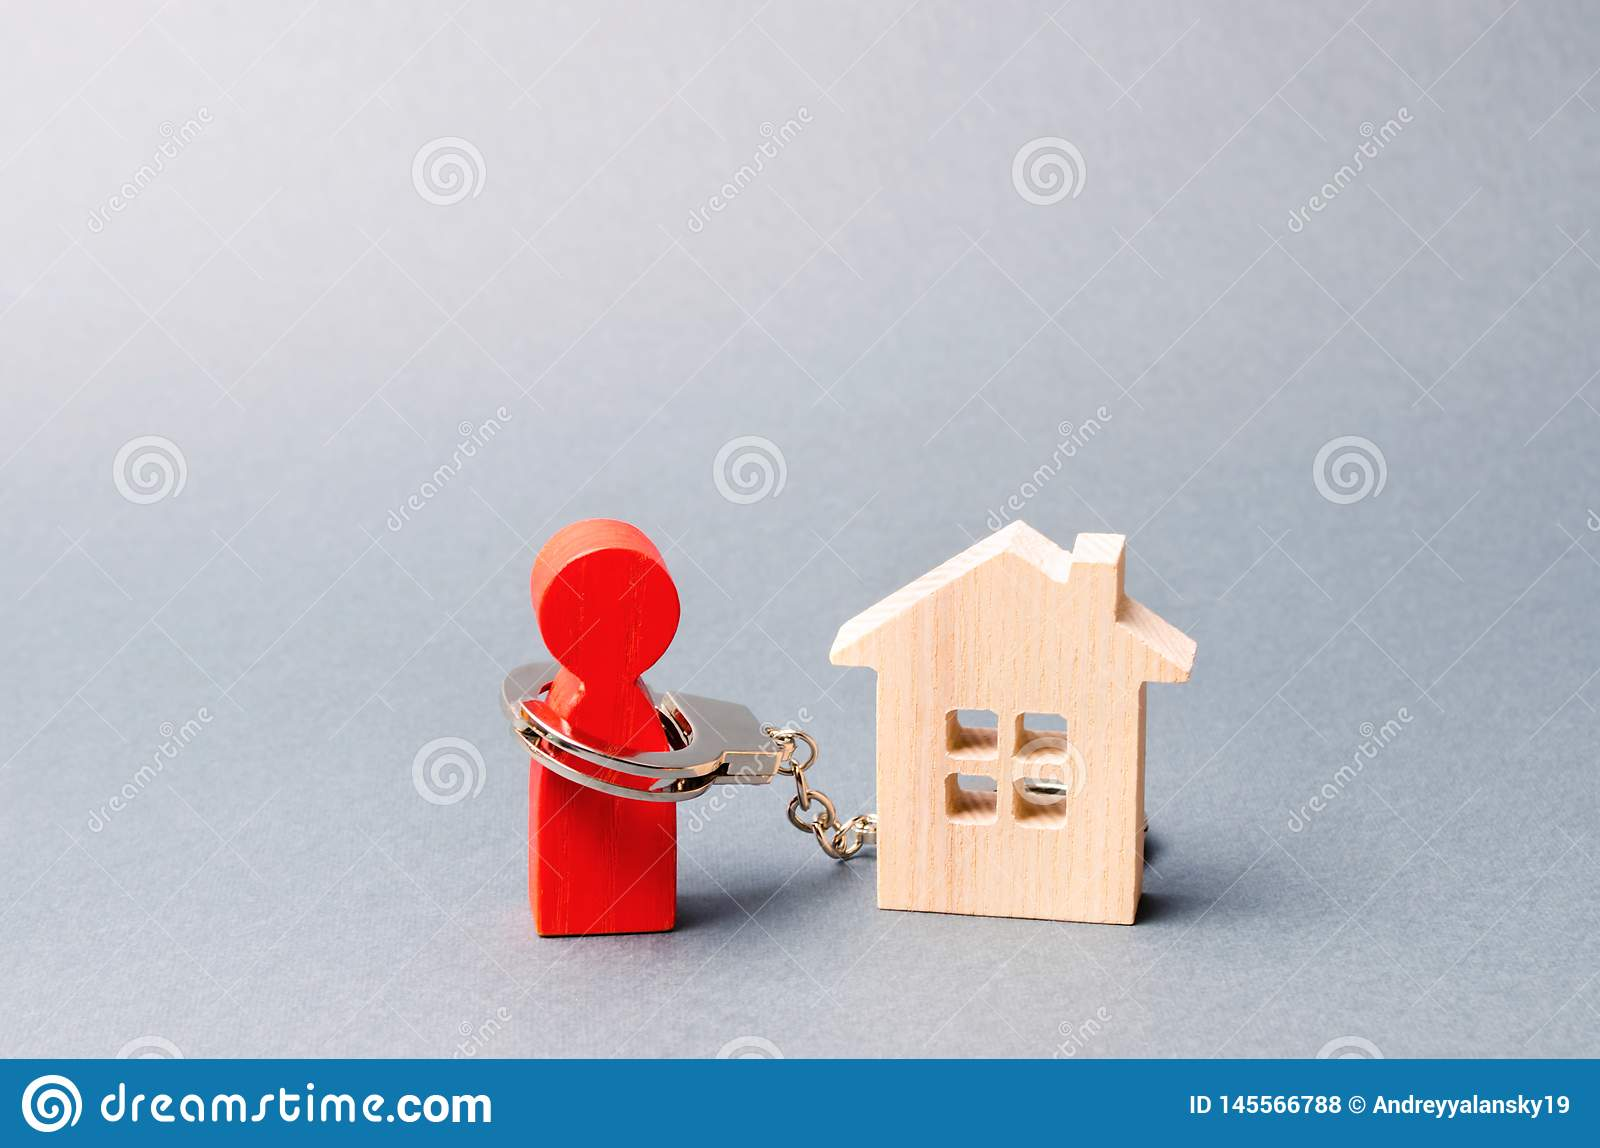 The figure of a man is handcuffed to a wooden house. Impossibility of paying interest rates on mortgages and repayment of loans.